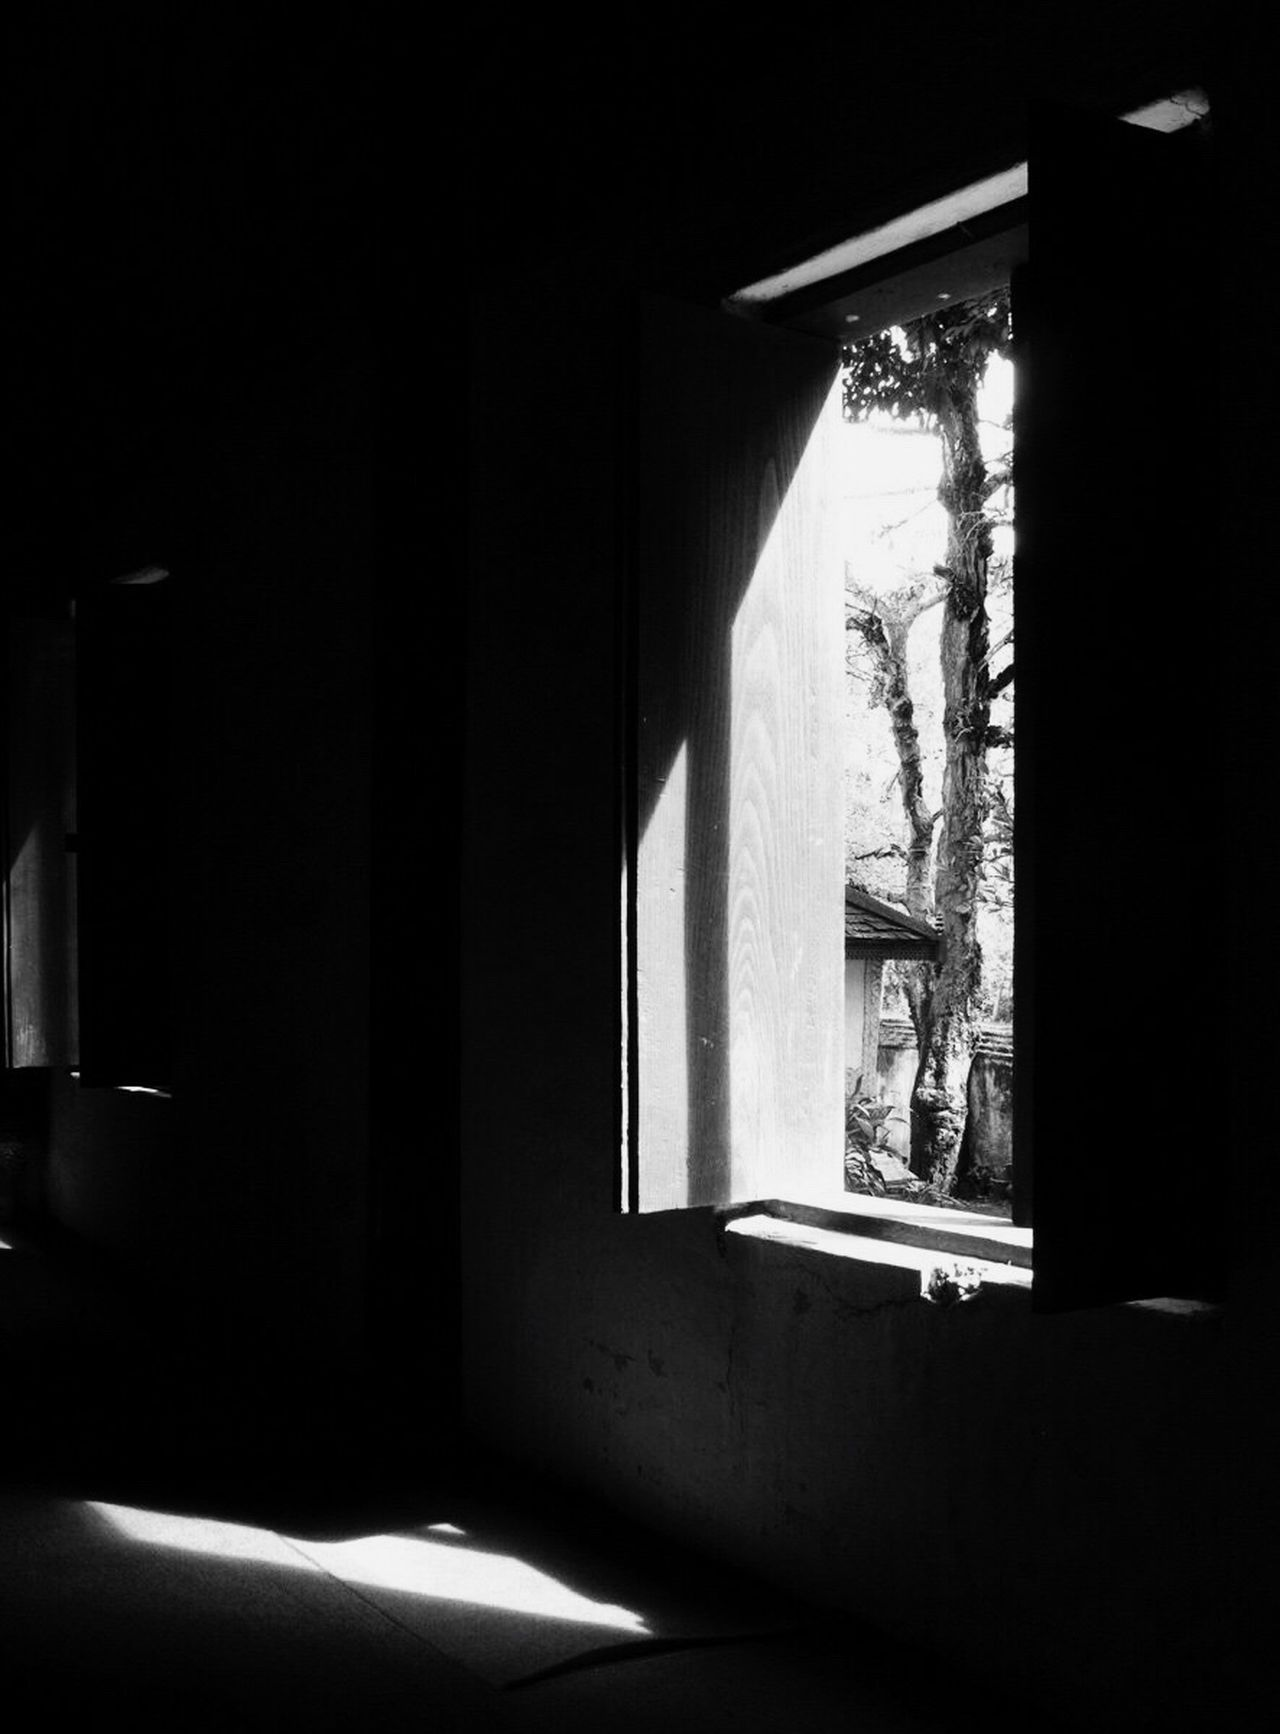 Light And Shadow Light Window Thailand Black And White Blackandwhite Temple Chiang Mai Mae Jam Tree Indoors  Trees Outside